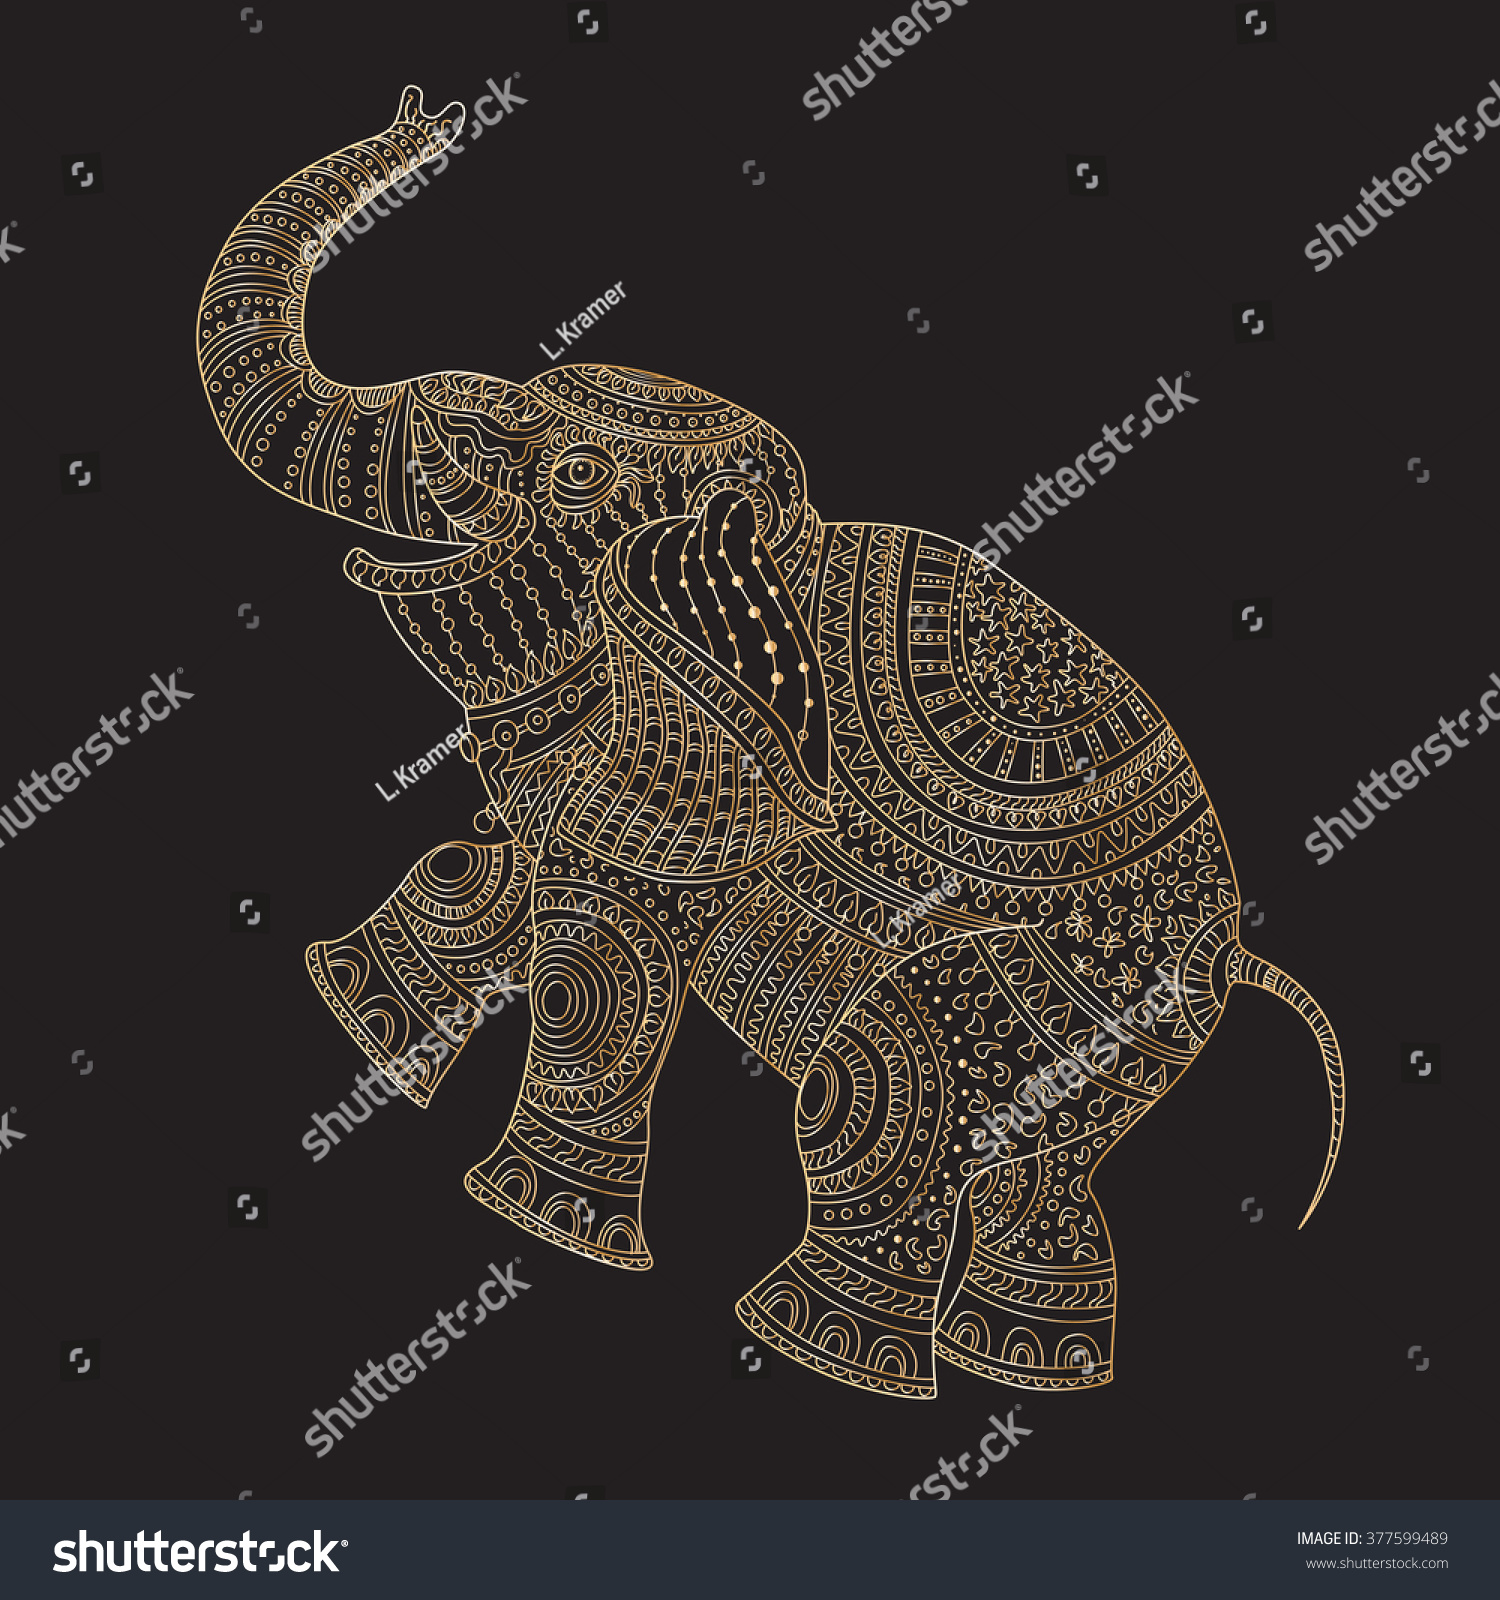 Zentangle Elefant Vorlage Vector Decorative Fantasy Stylized Ornate Elephant Stock